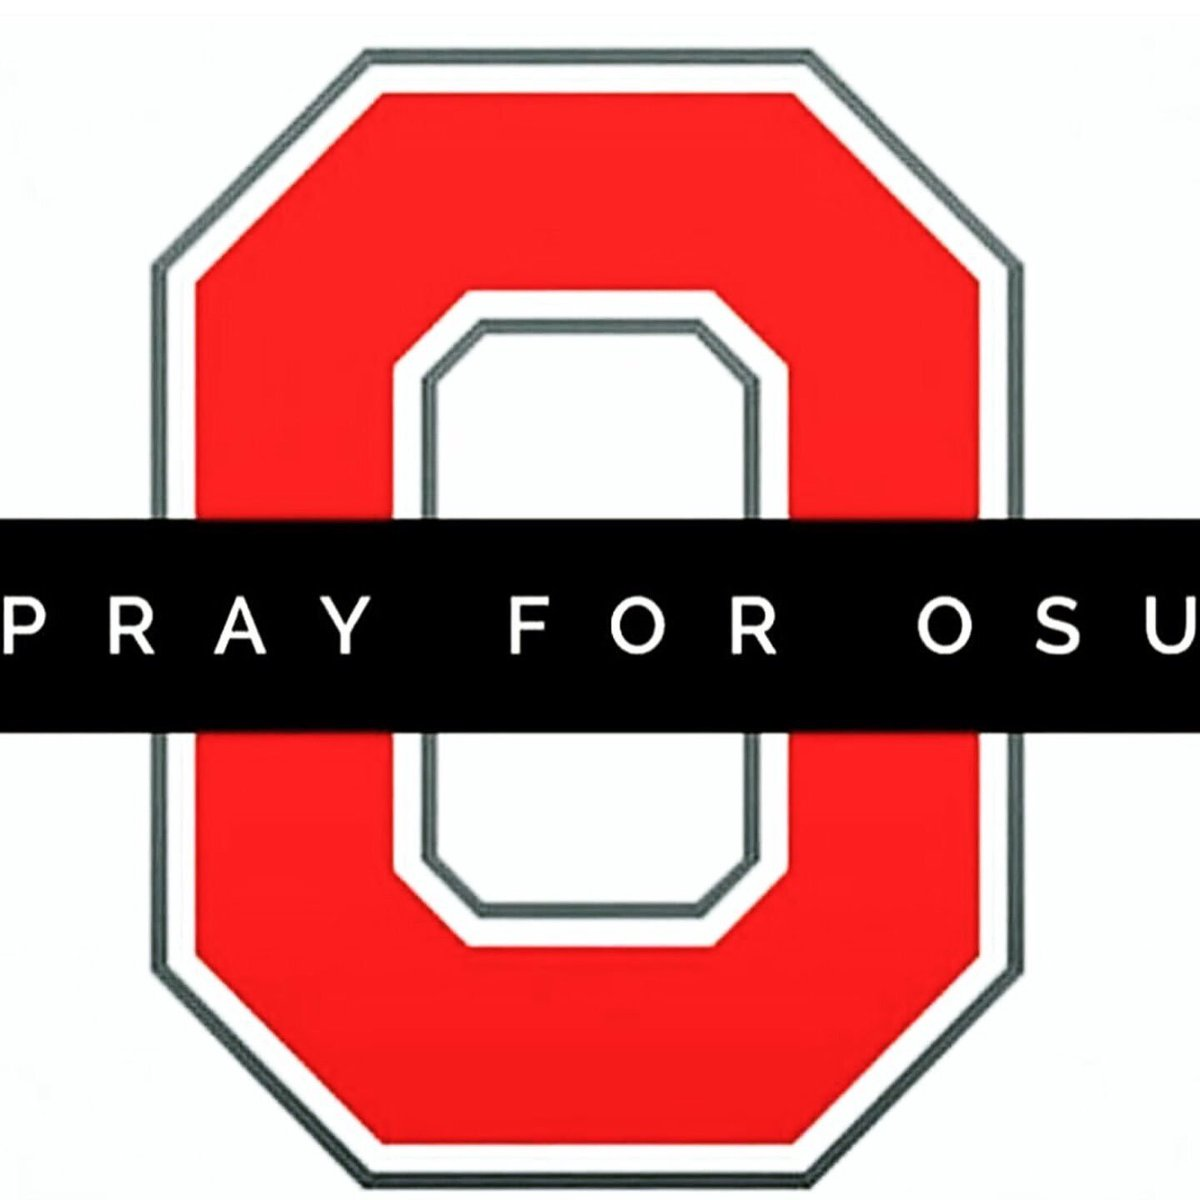 Sending our thoughts to students, victims their families after the violent incident at Ohio State. https://t.co/MYjayyo1N5